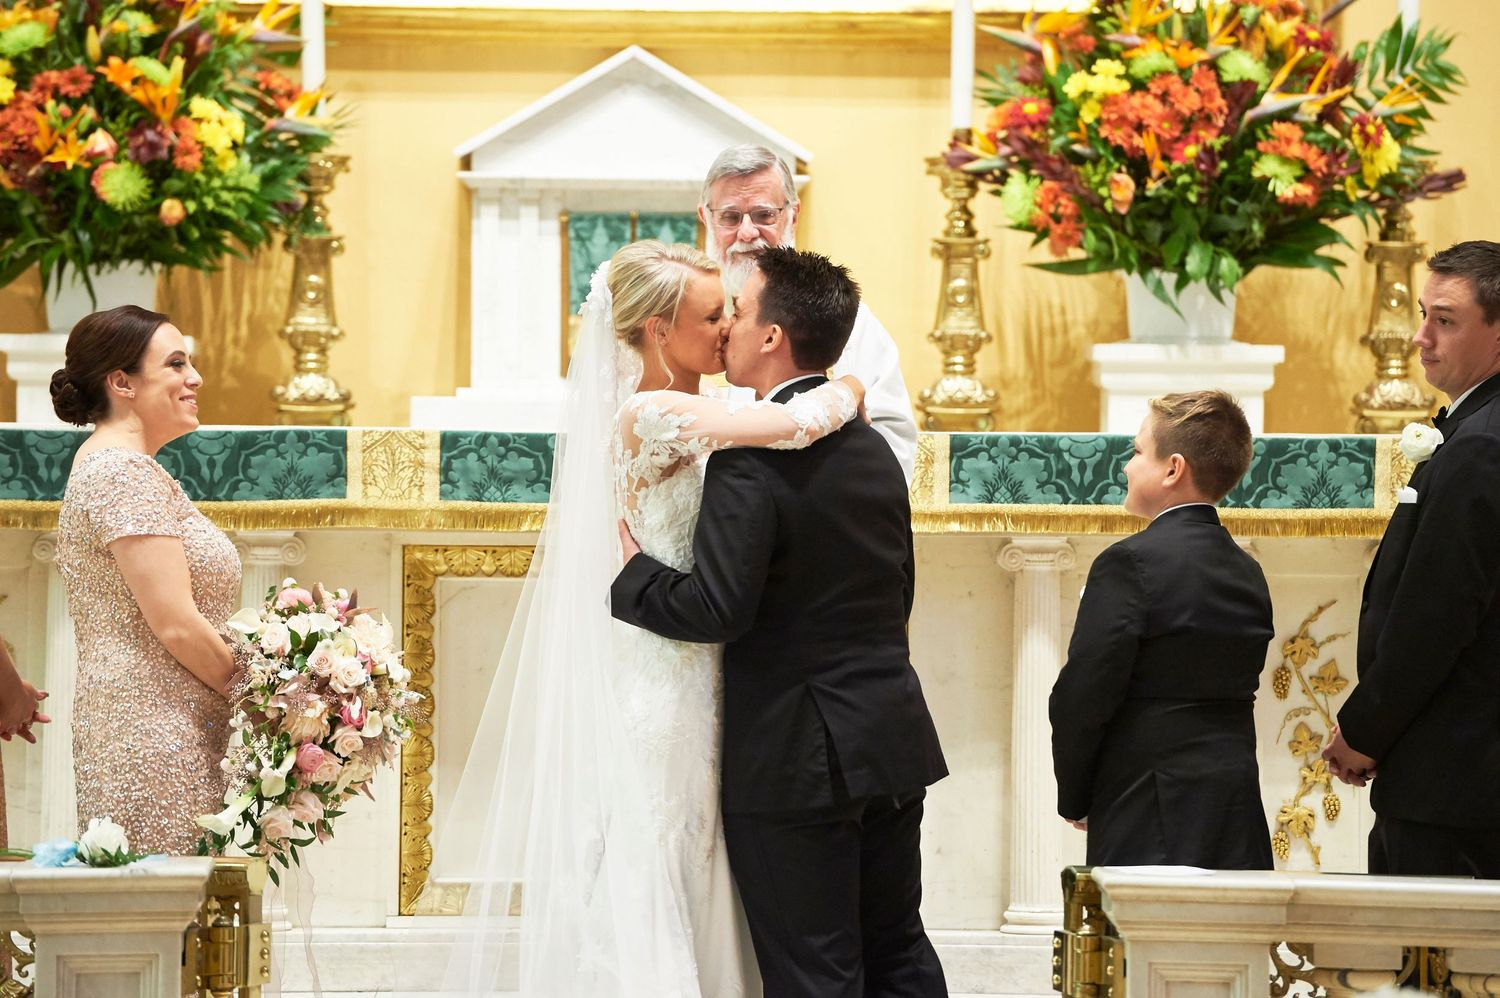 bride and groom's first kiss at Old St. Joseph's church in Philadelphia wedding photo